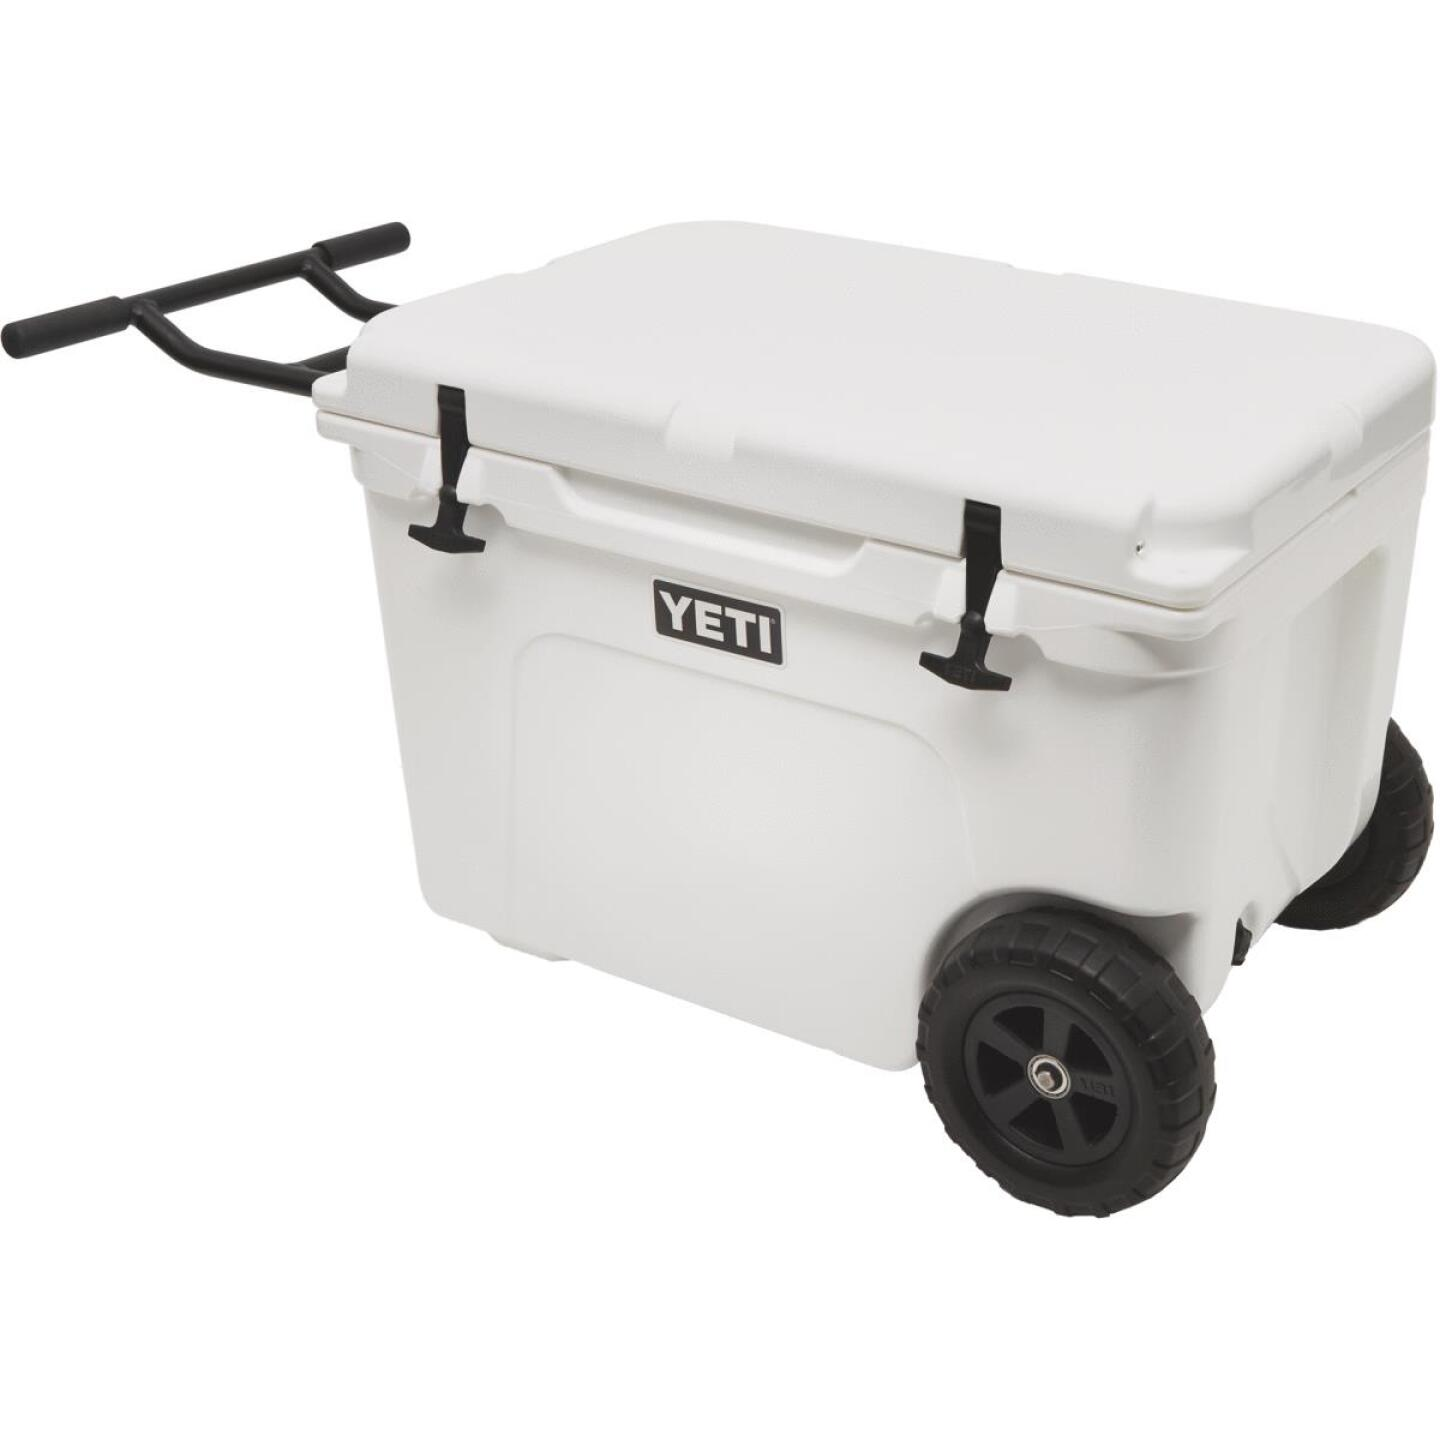 Yeti Tundra Haul 45-Can 2-Wheeled Cooler, White Image 1